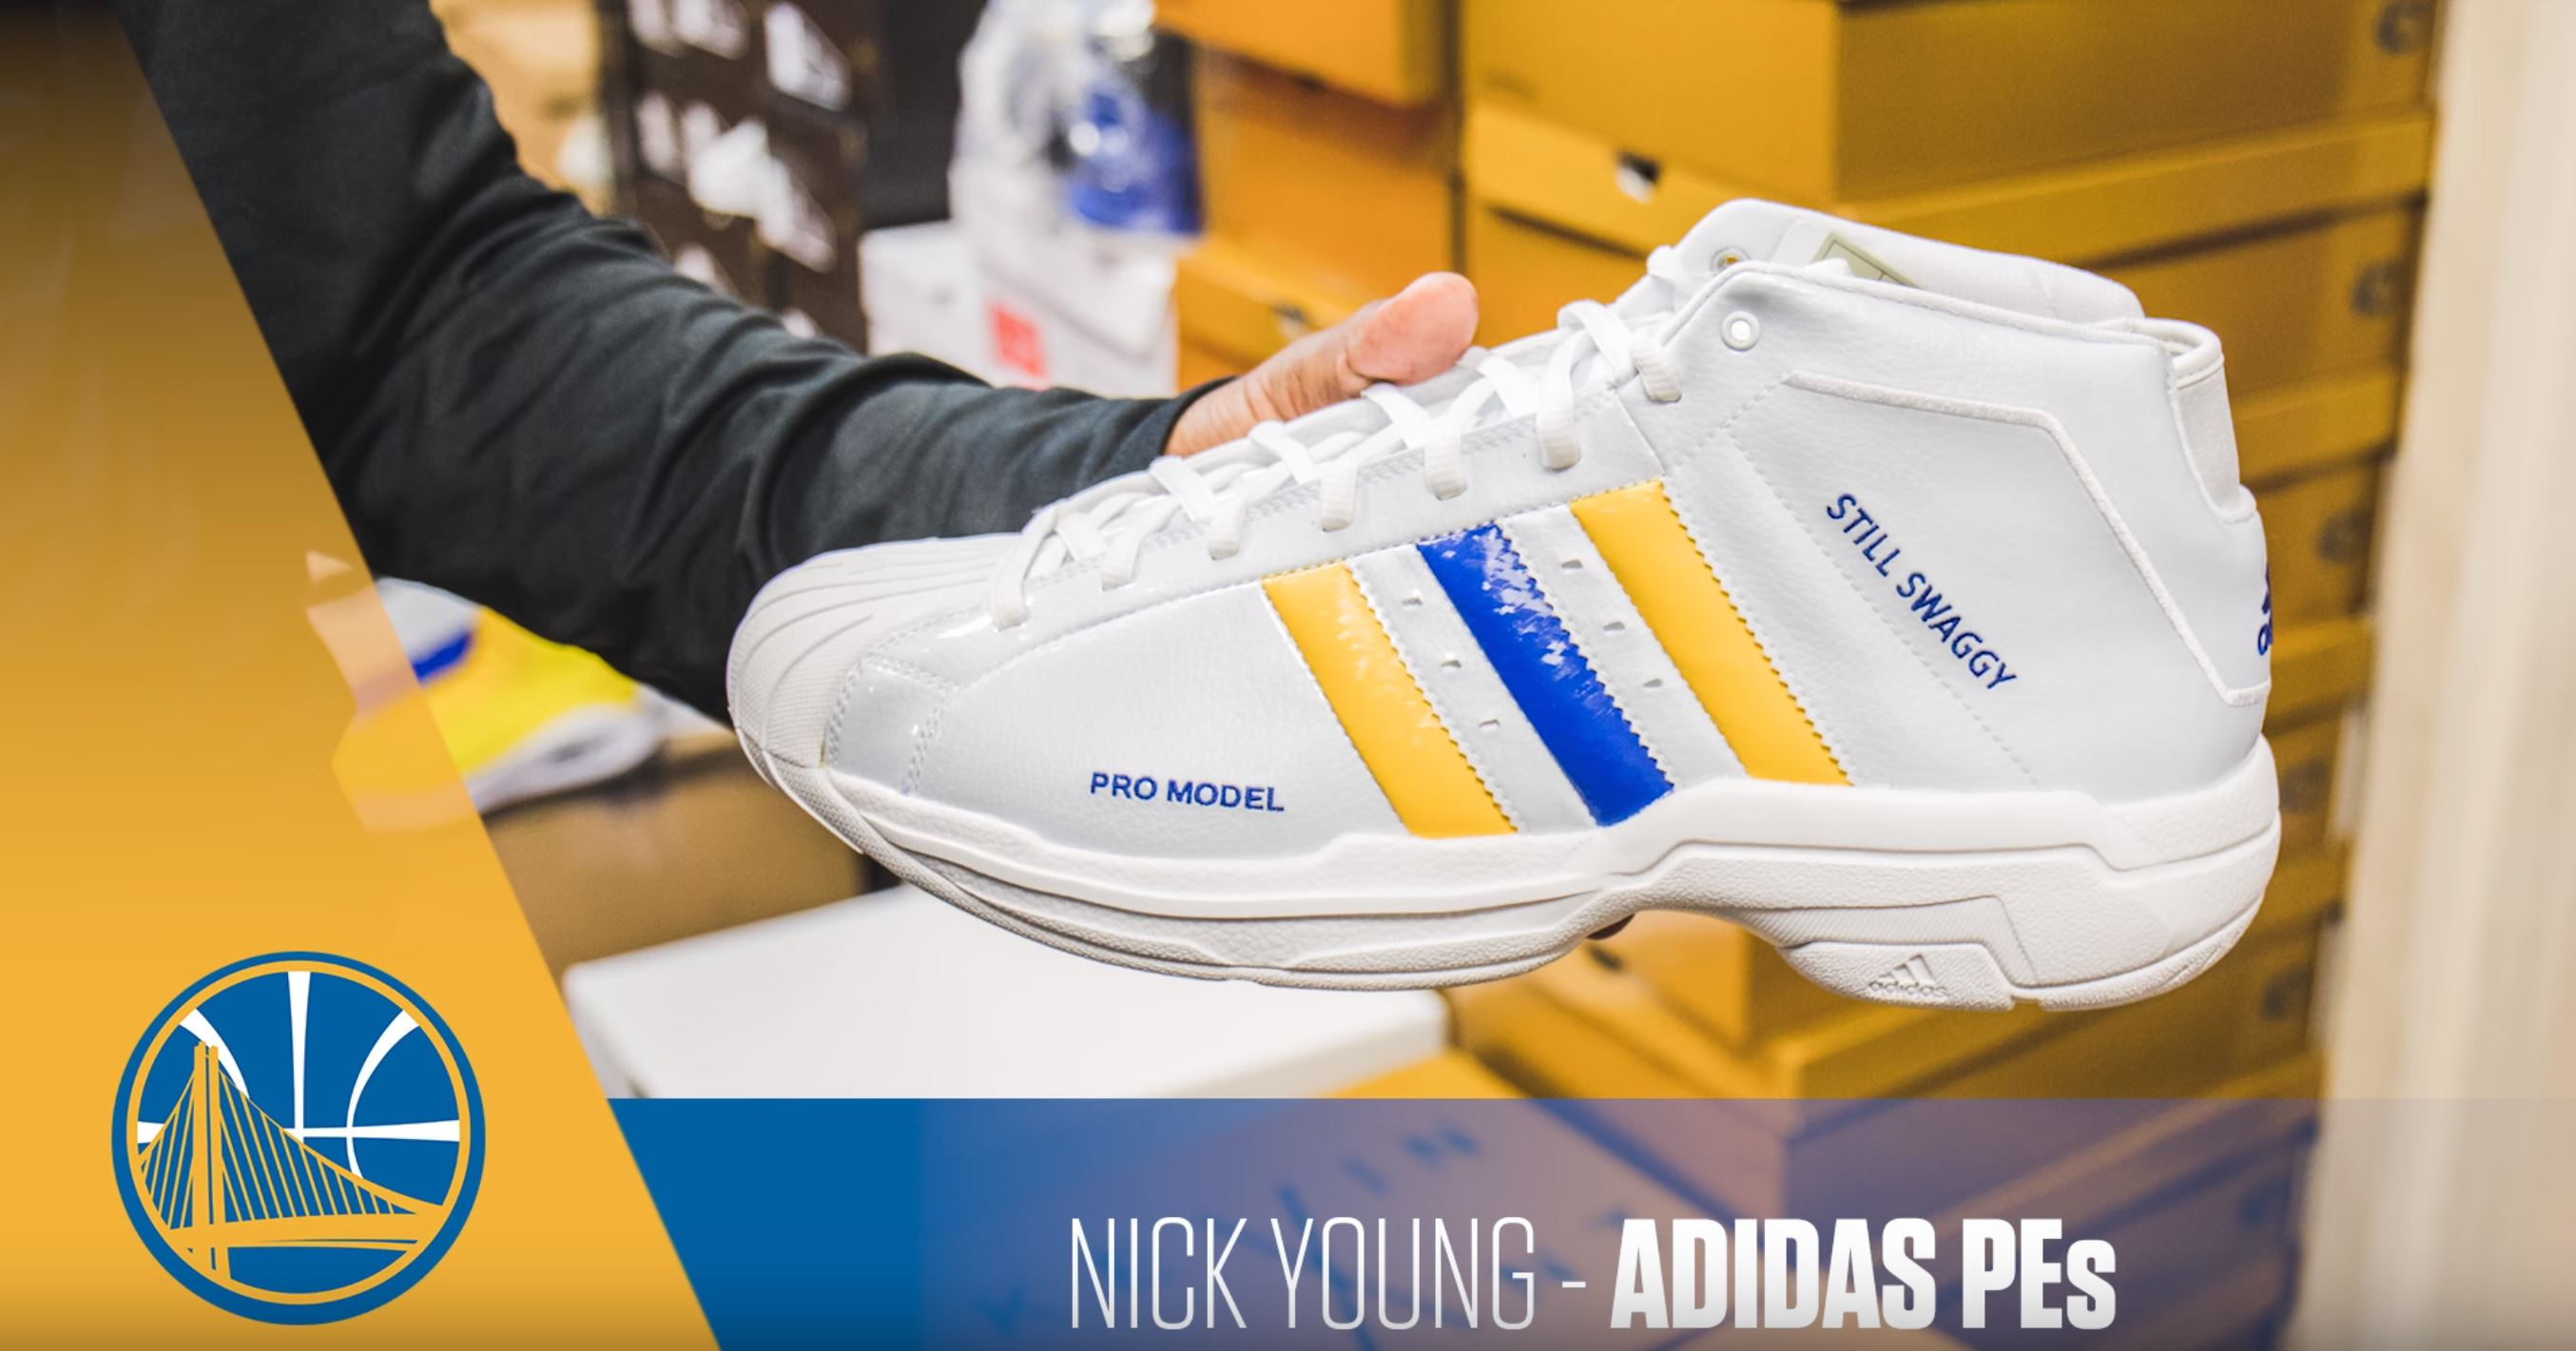 nick young adidas pro model PE